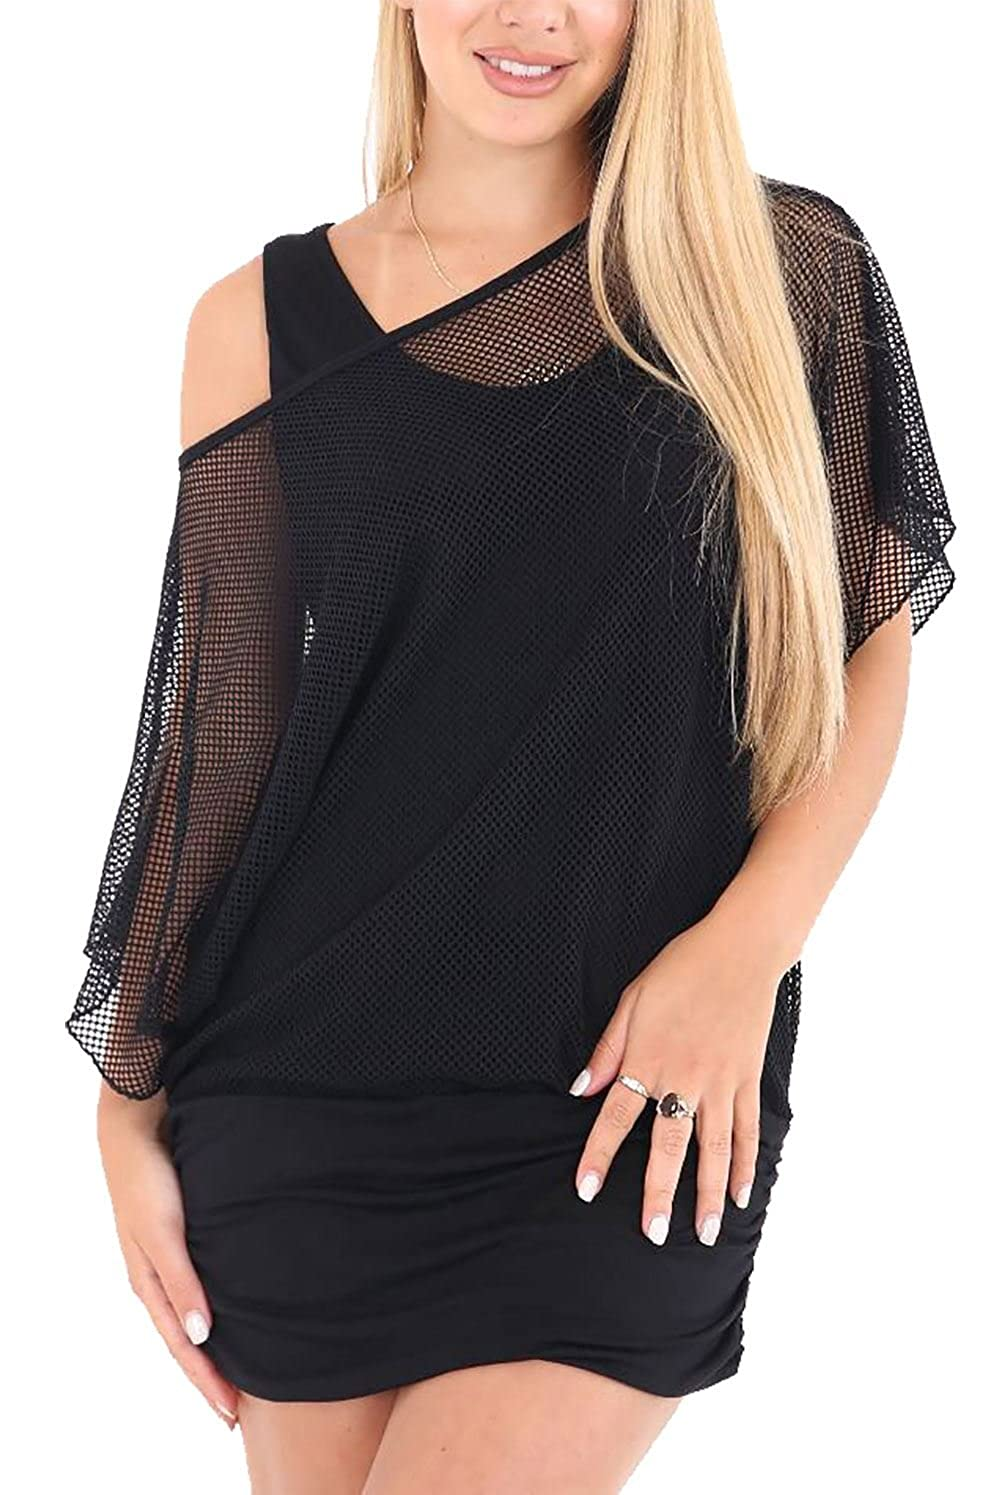 Womens Mesh Insert Full Lace Vest Ladies Fishnet Novelty Fancy Baggy Batwing Top RIDDLEDWITHSTYLE